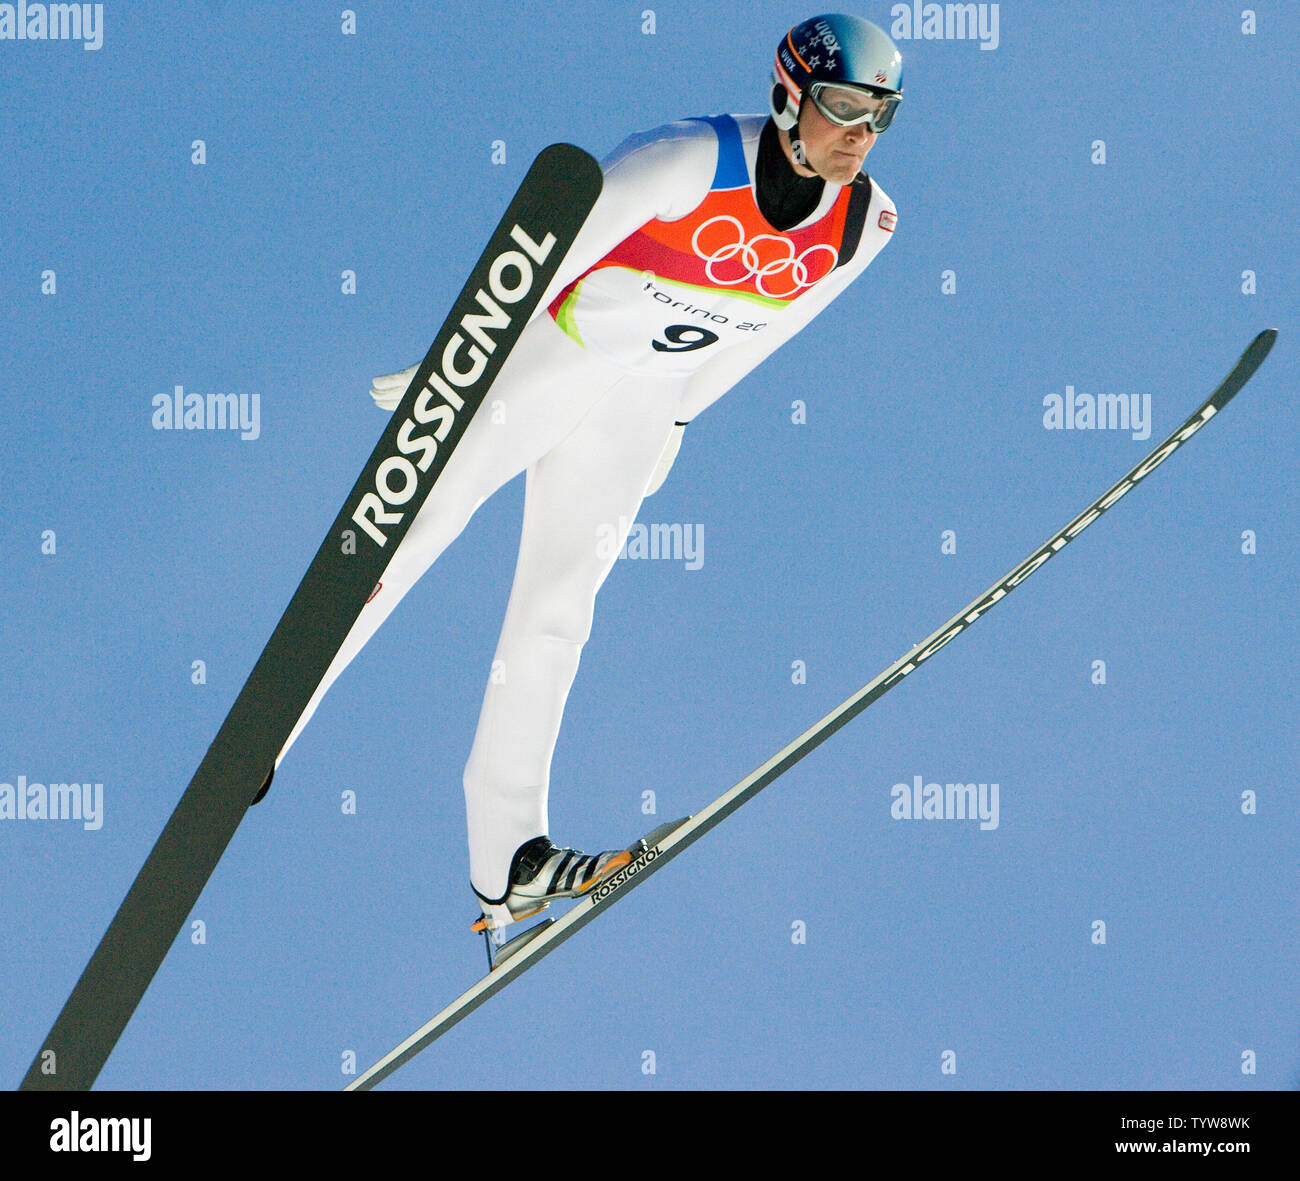 Alan Alborn of the USA soars during the training jump in the finals of men's large hill individual ski jumping at Pragelato in the 2006 Torino Winter Olympic Games, February 18, 2006. Alborn finishes 43rd overall. (UPI Photo/Heinz Ruckemann) - Stock Image